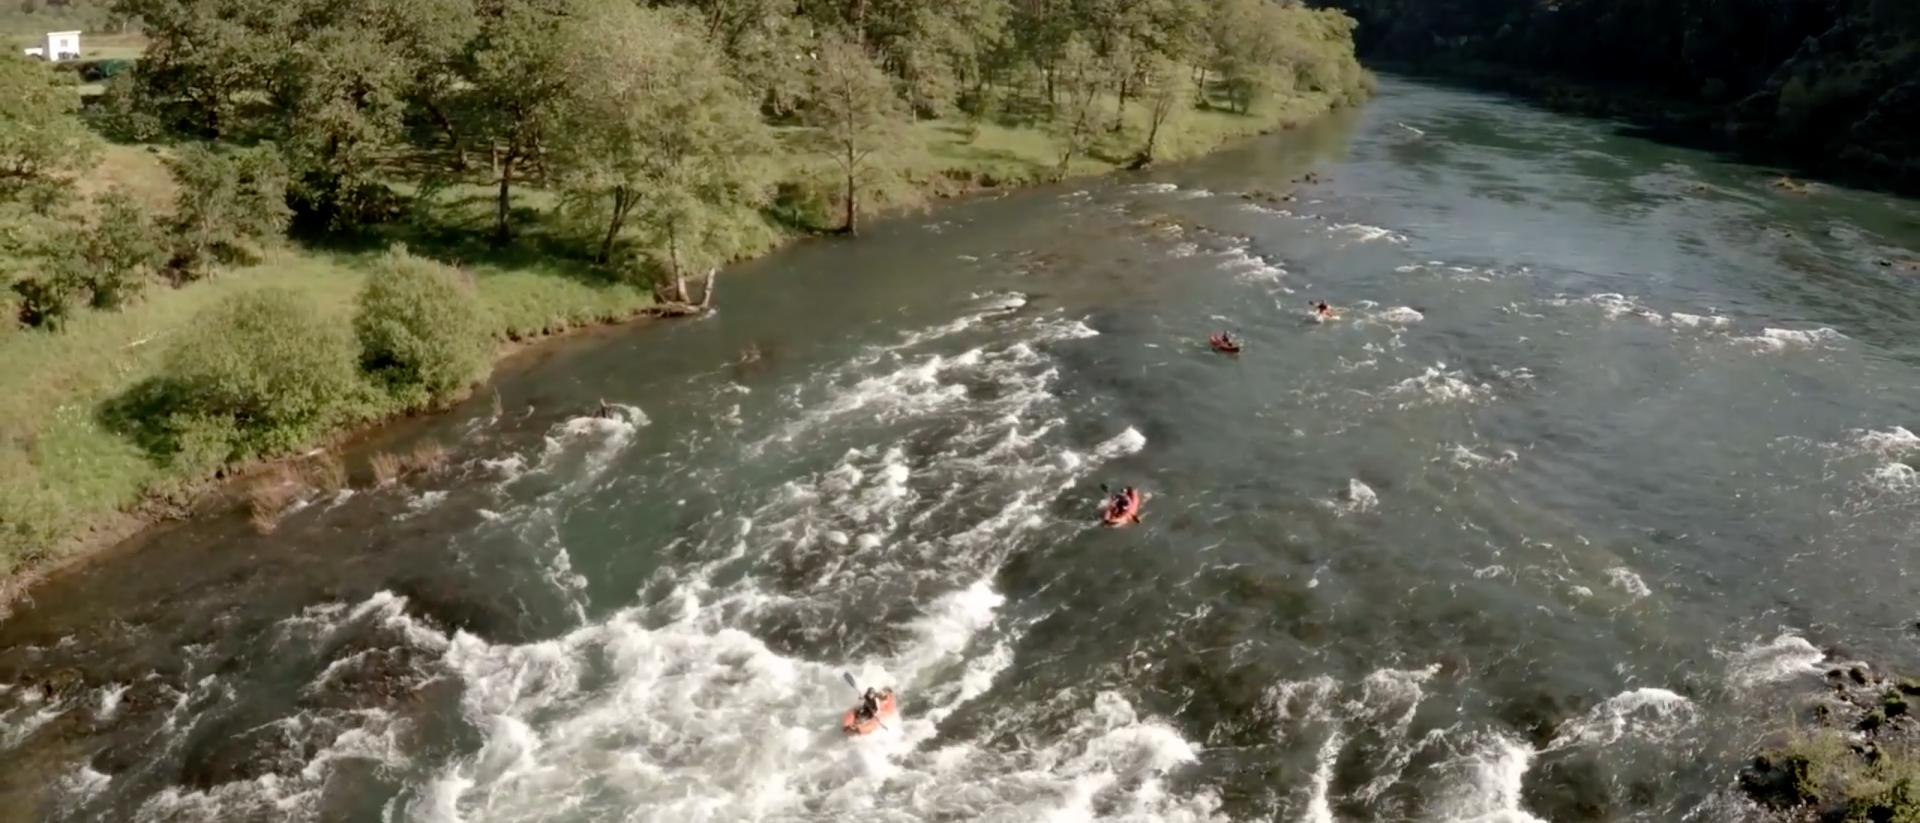 Students kayaking on the Willamette River.